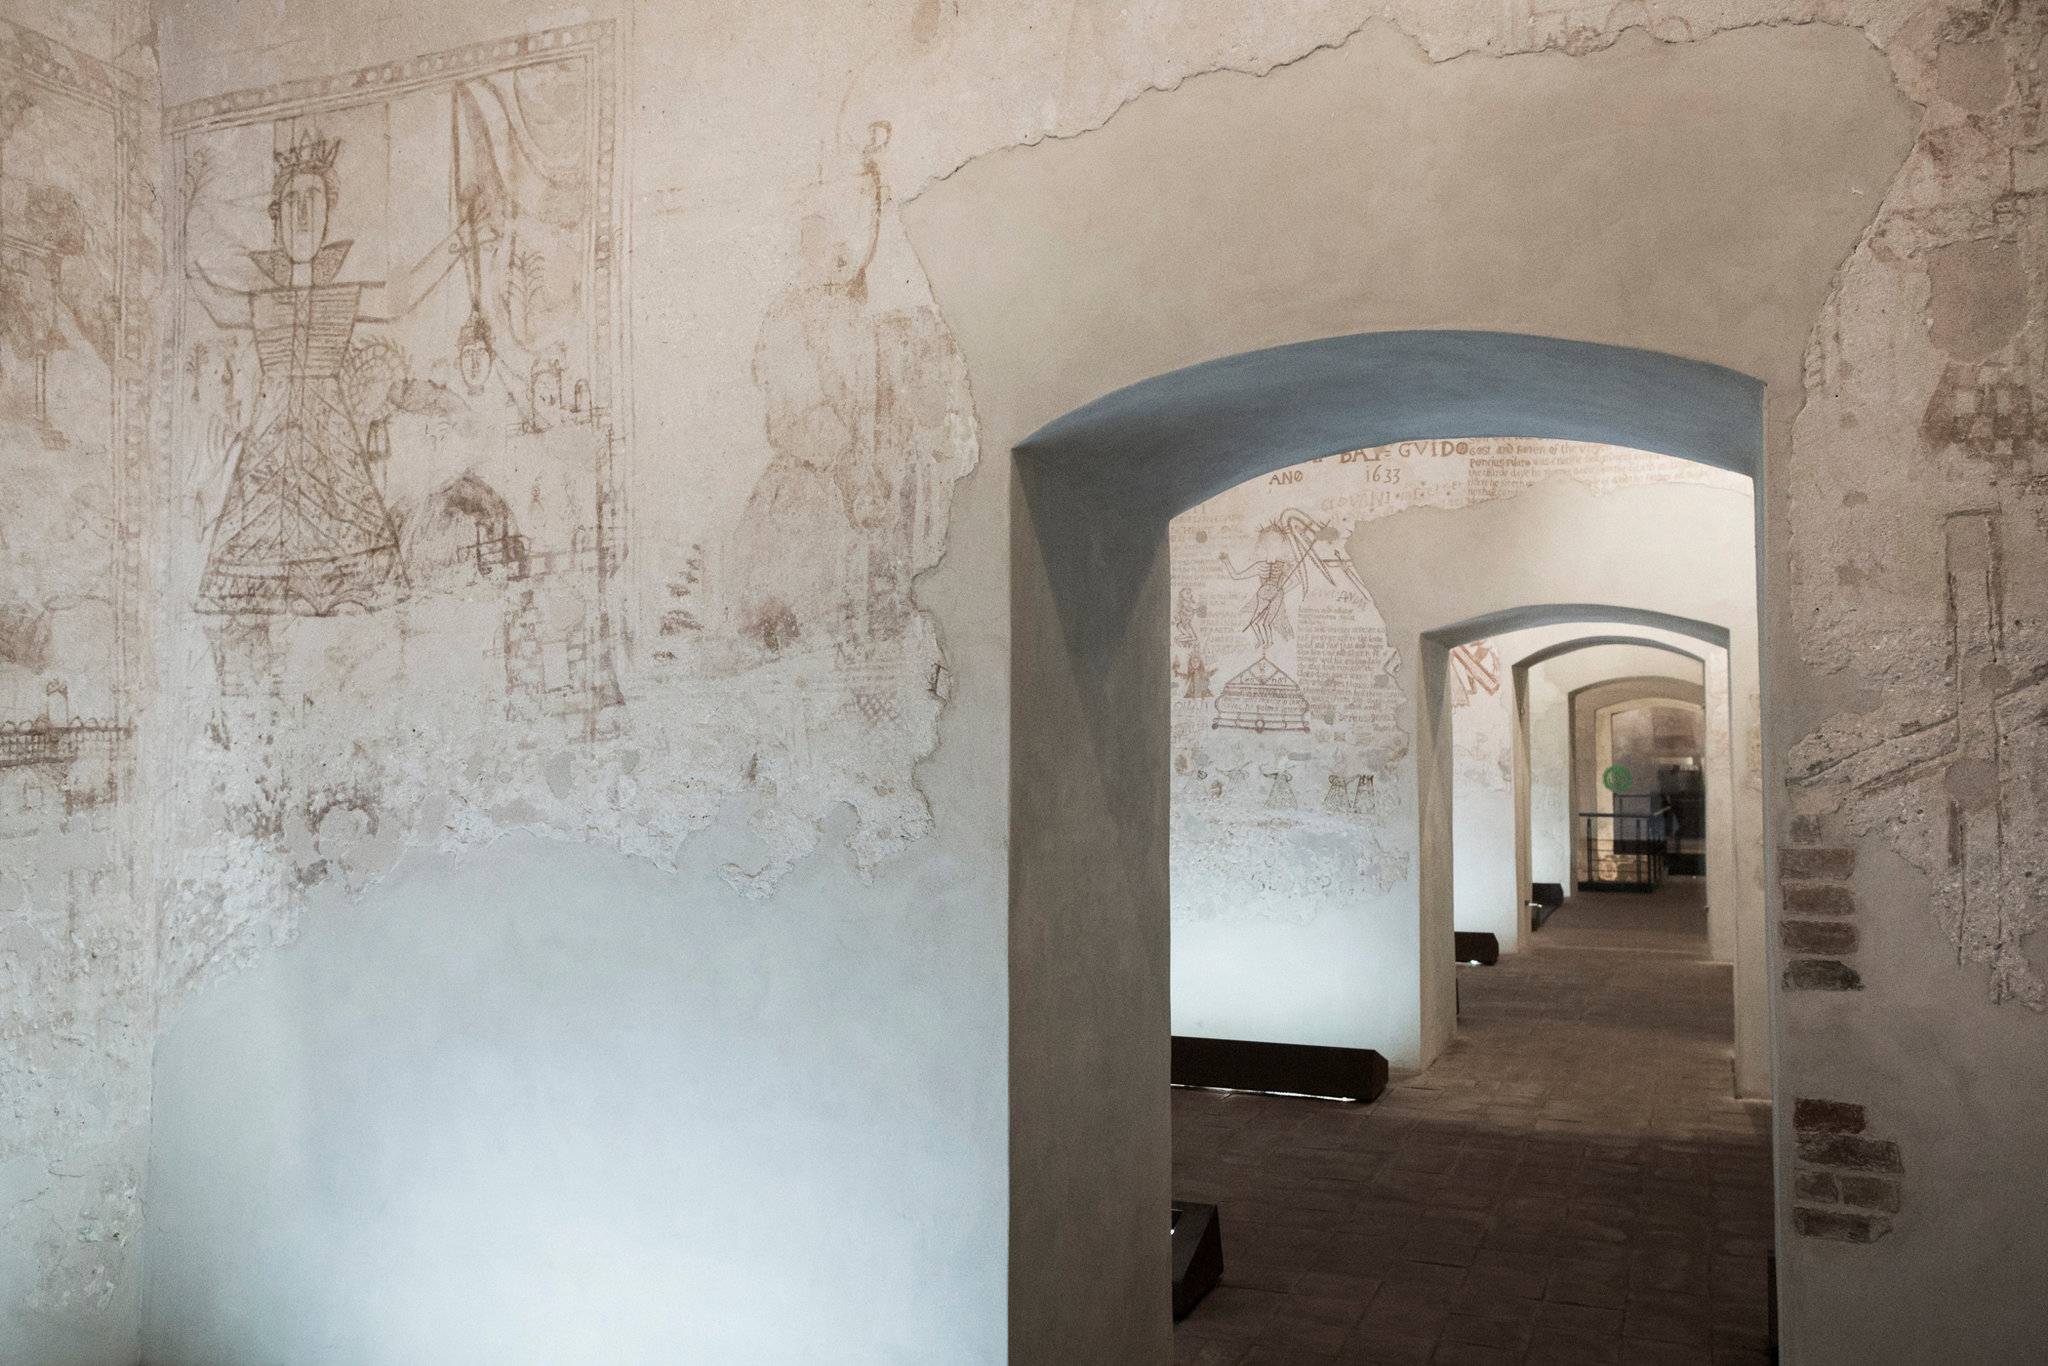 Palazzo Chiaramonte-Steri, today part of the University of Palermo, served as the prison and tribunal of the Inquisition. Its walls bear the scrawls of past inmates, including some written in Hebrew. Credit: Gianni Cipriano for The New York Times